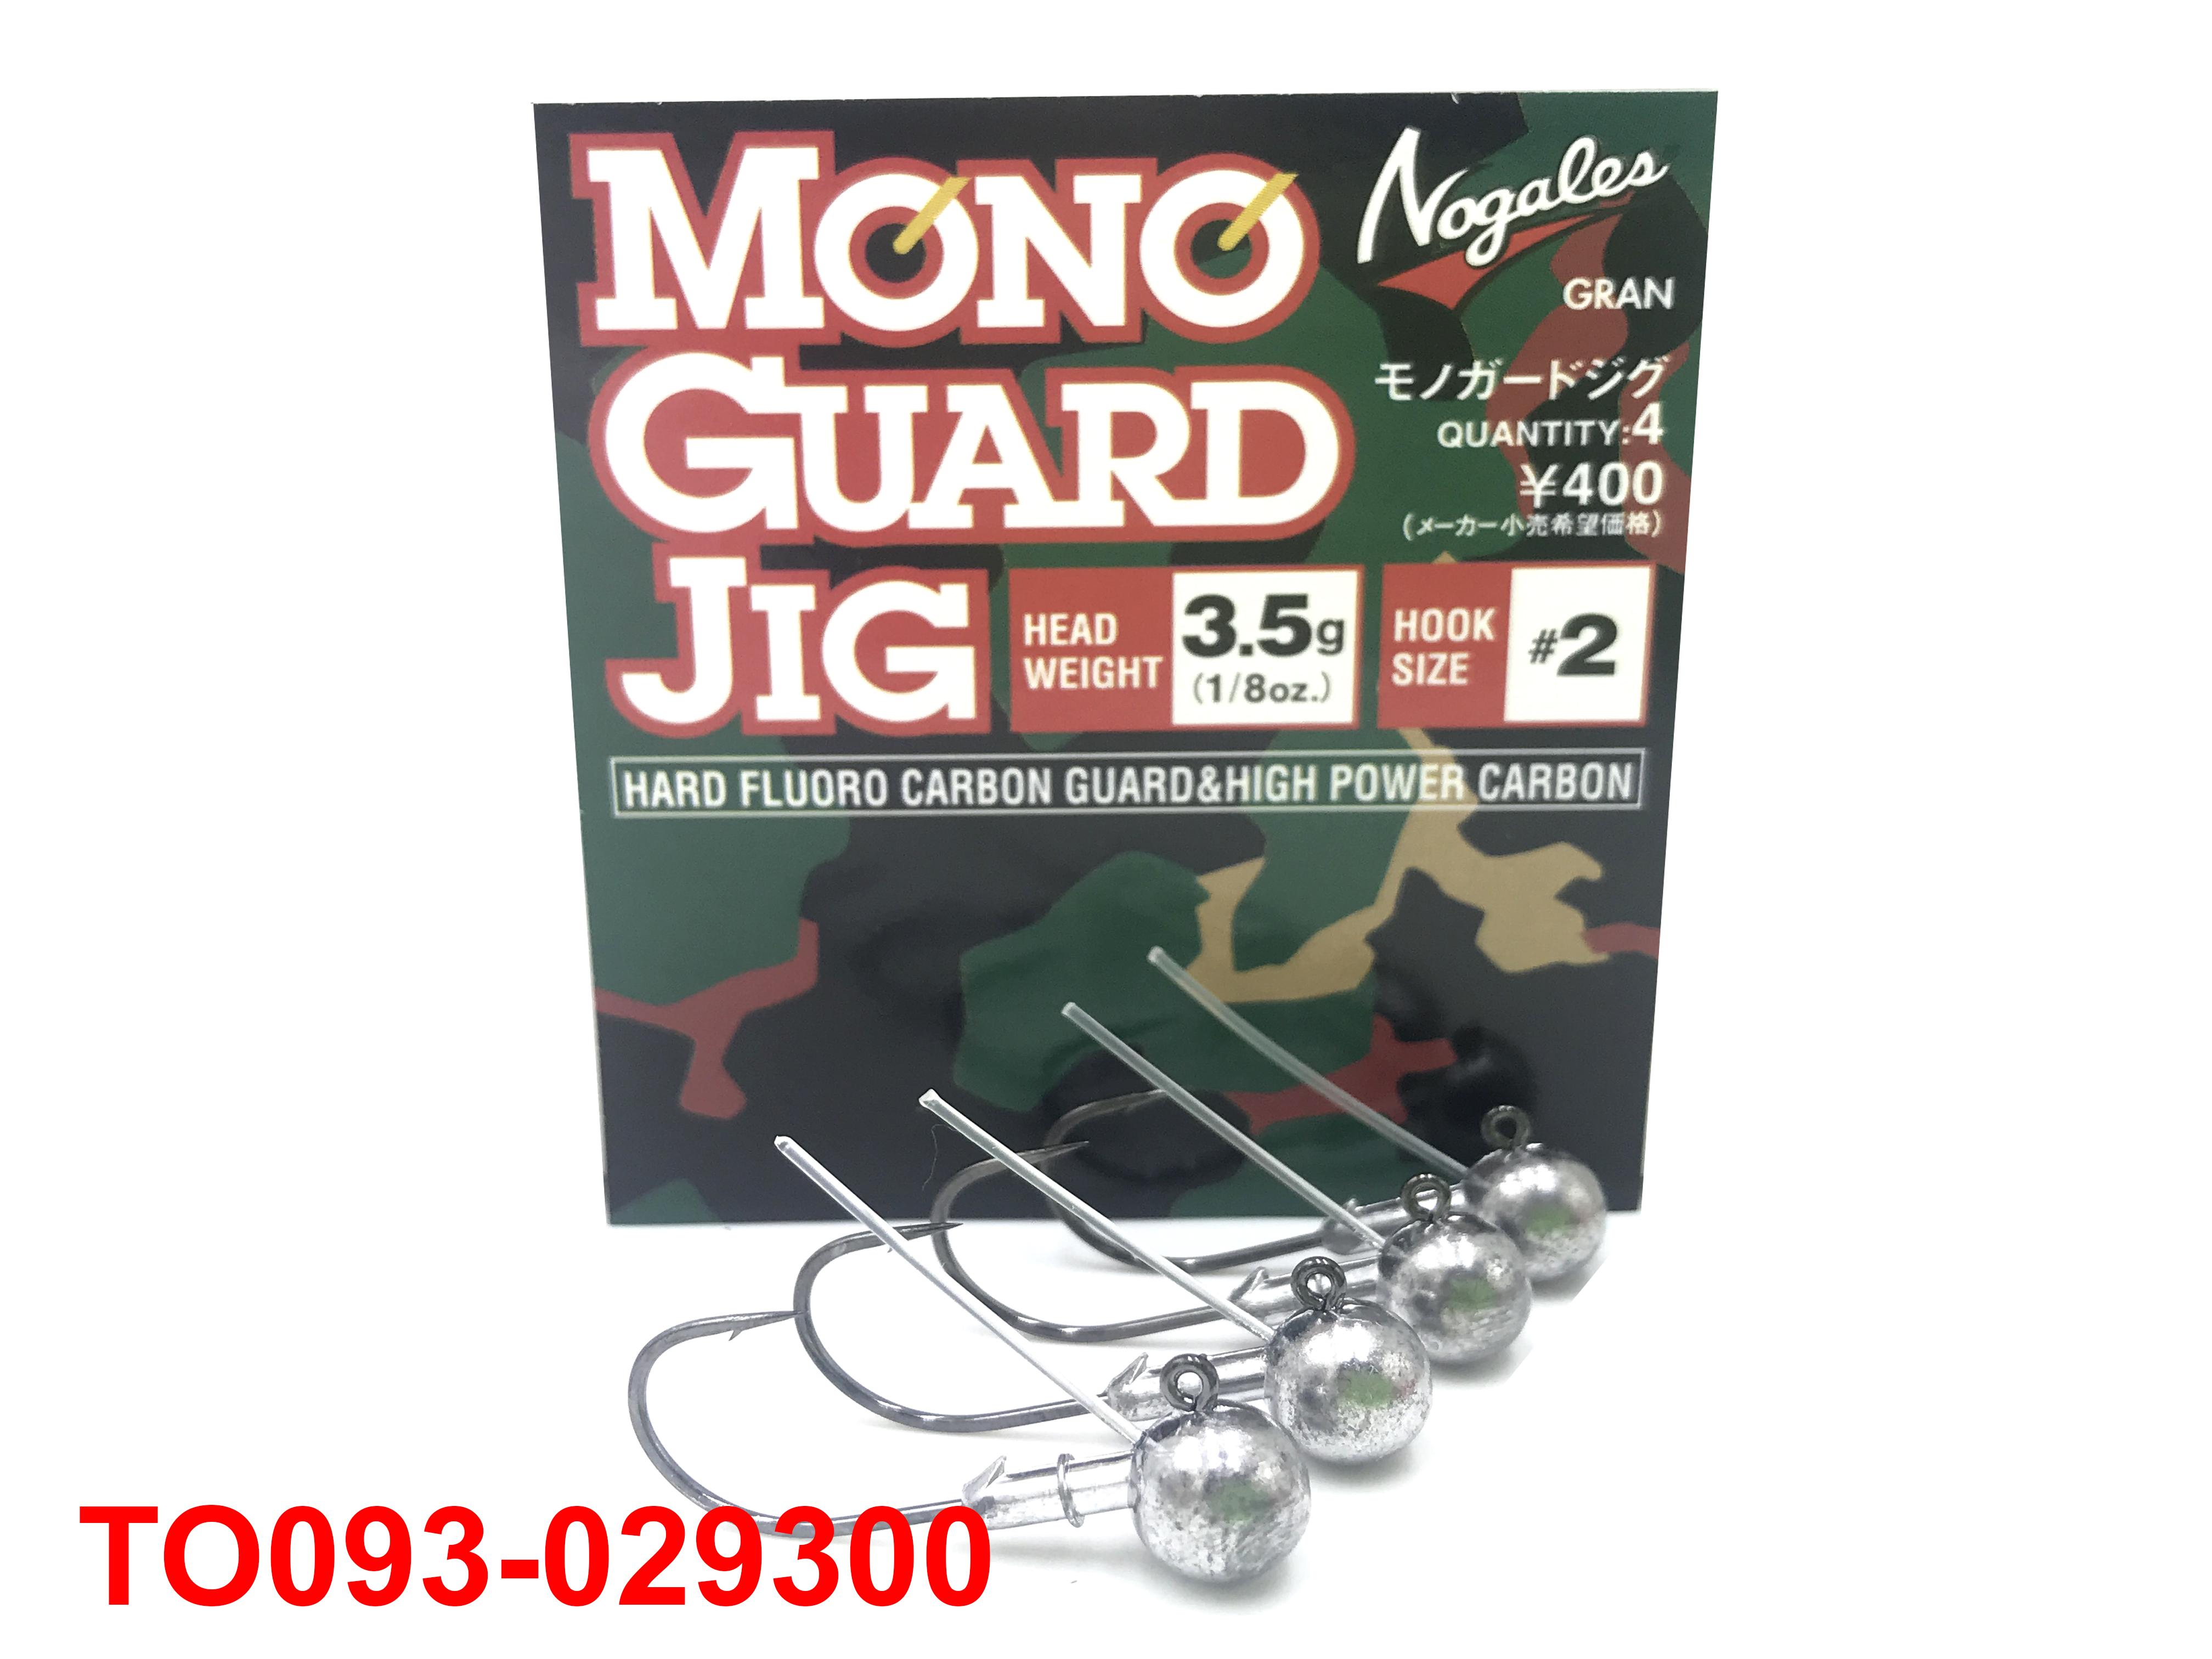 VARIVAS - GRAND NOGALES MONO GUARD JIG #2 - 3.5G